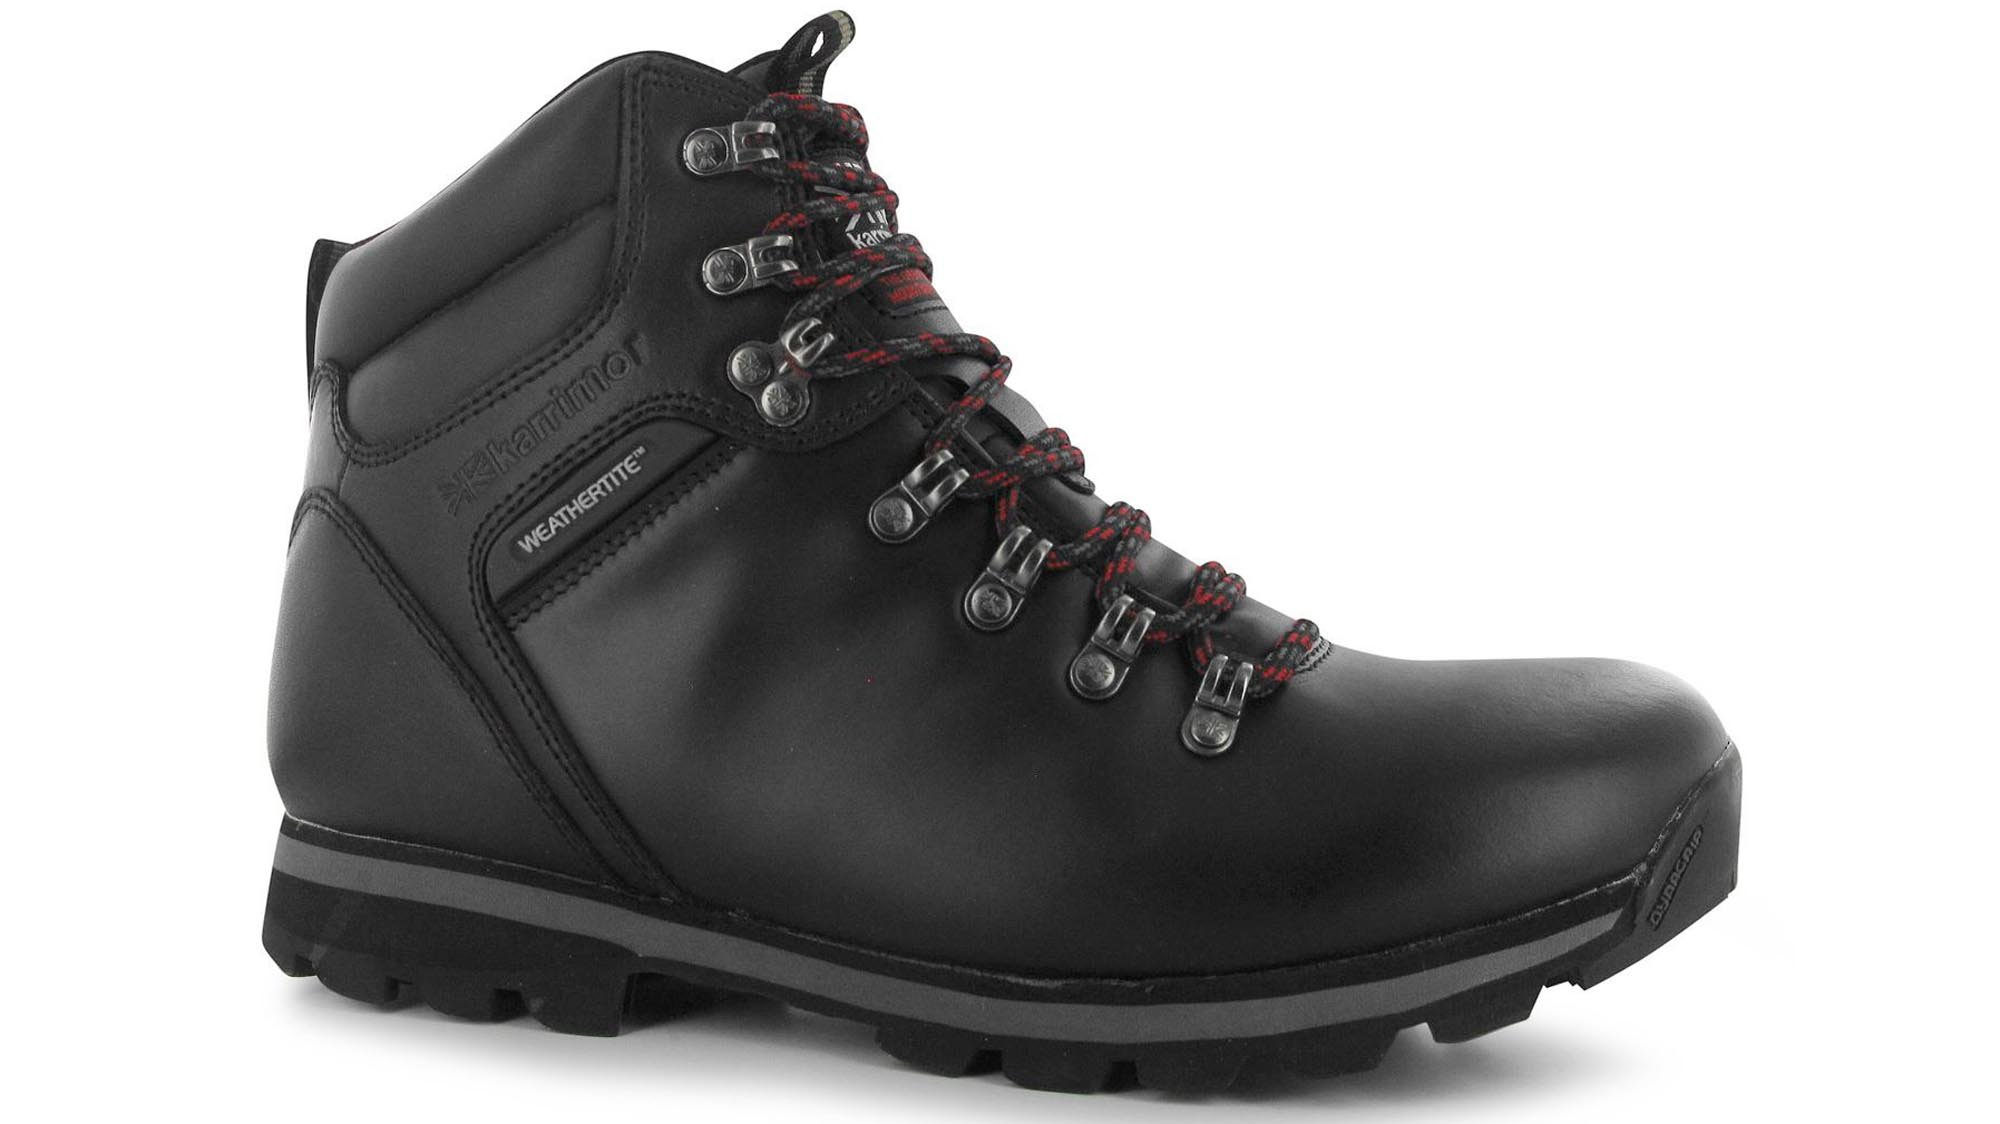 Best hiking boots 2020: The best boots